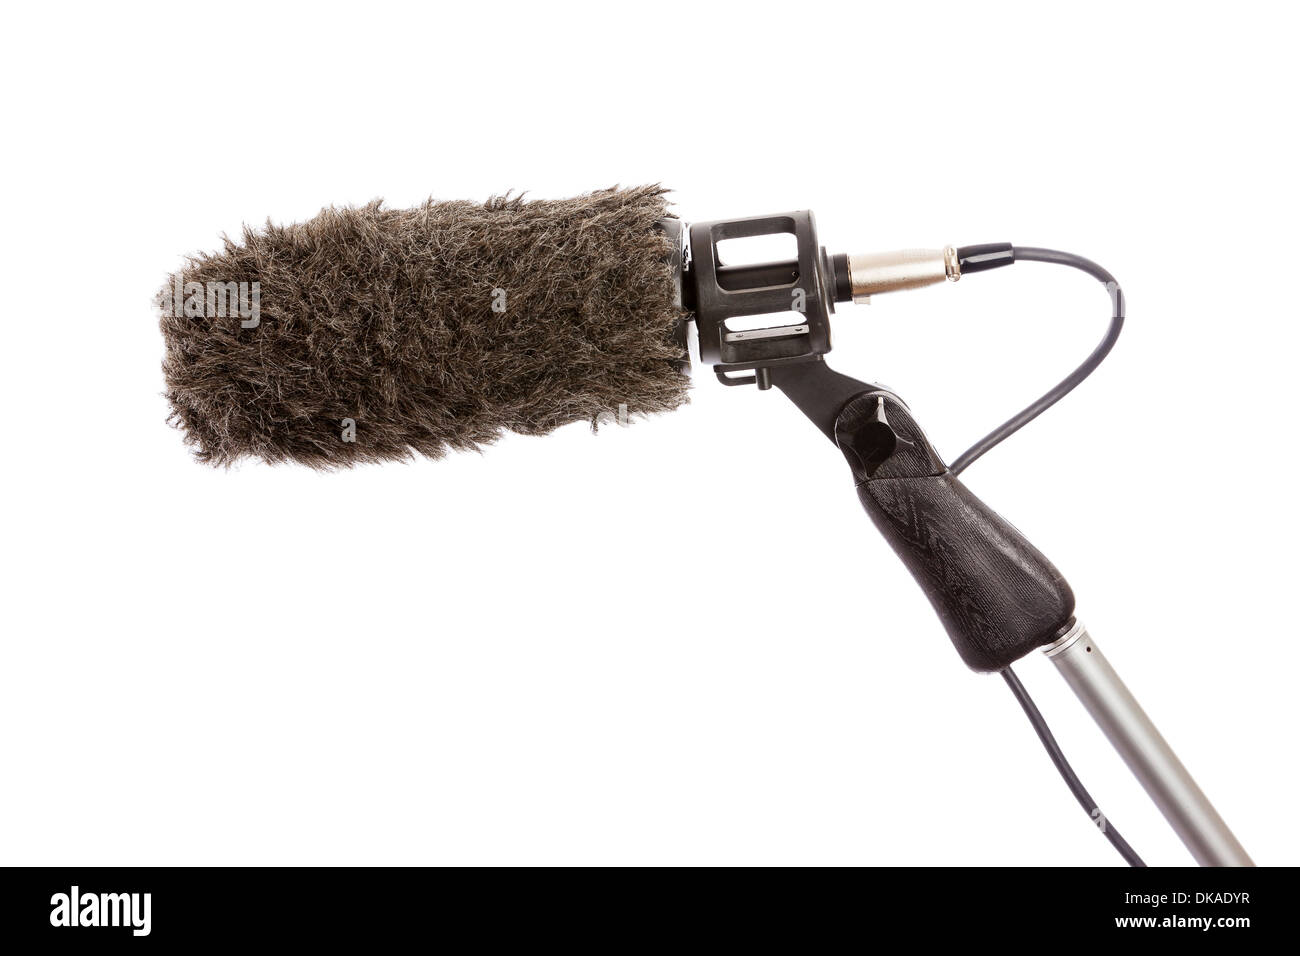 Close-up of a fluffy windshield on a boom microphone against a white background - Stock Image